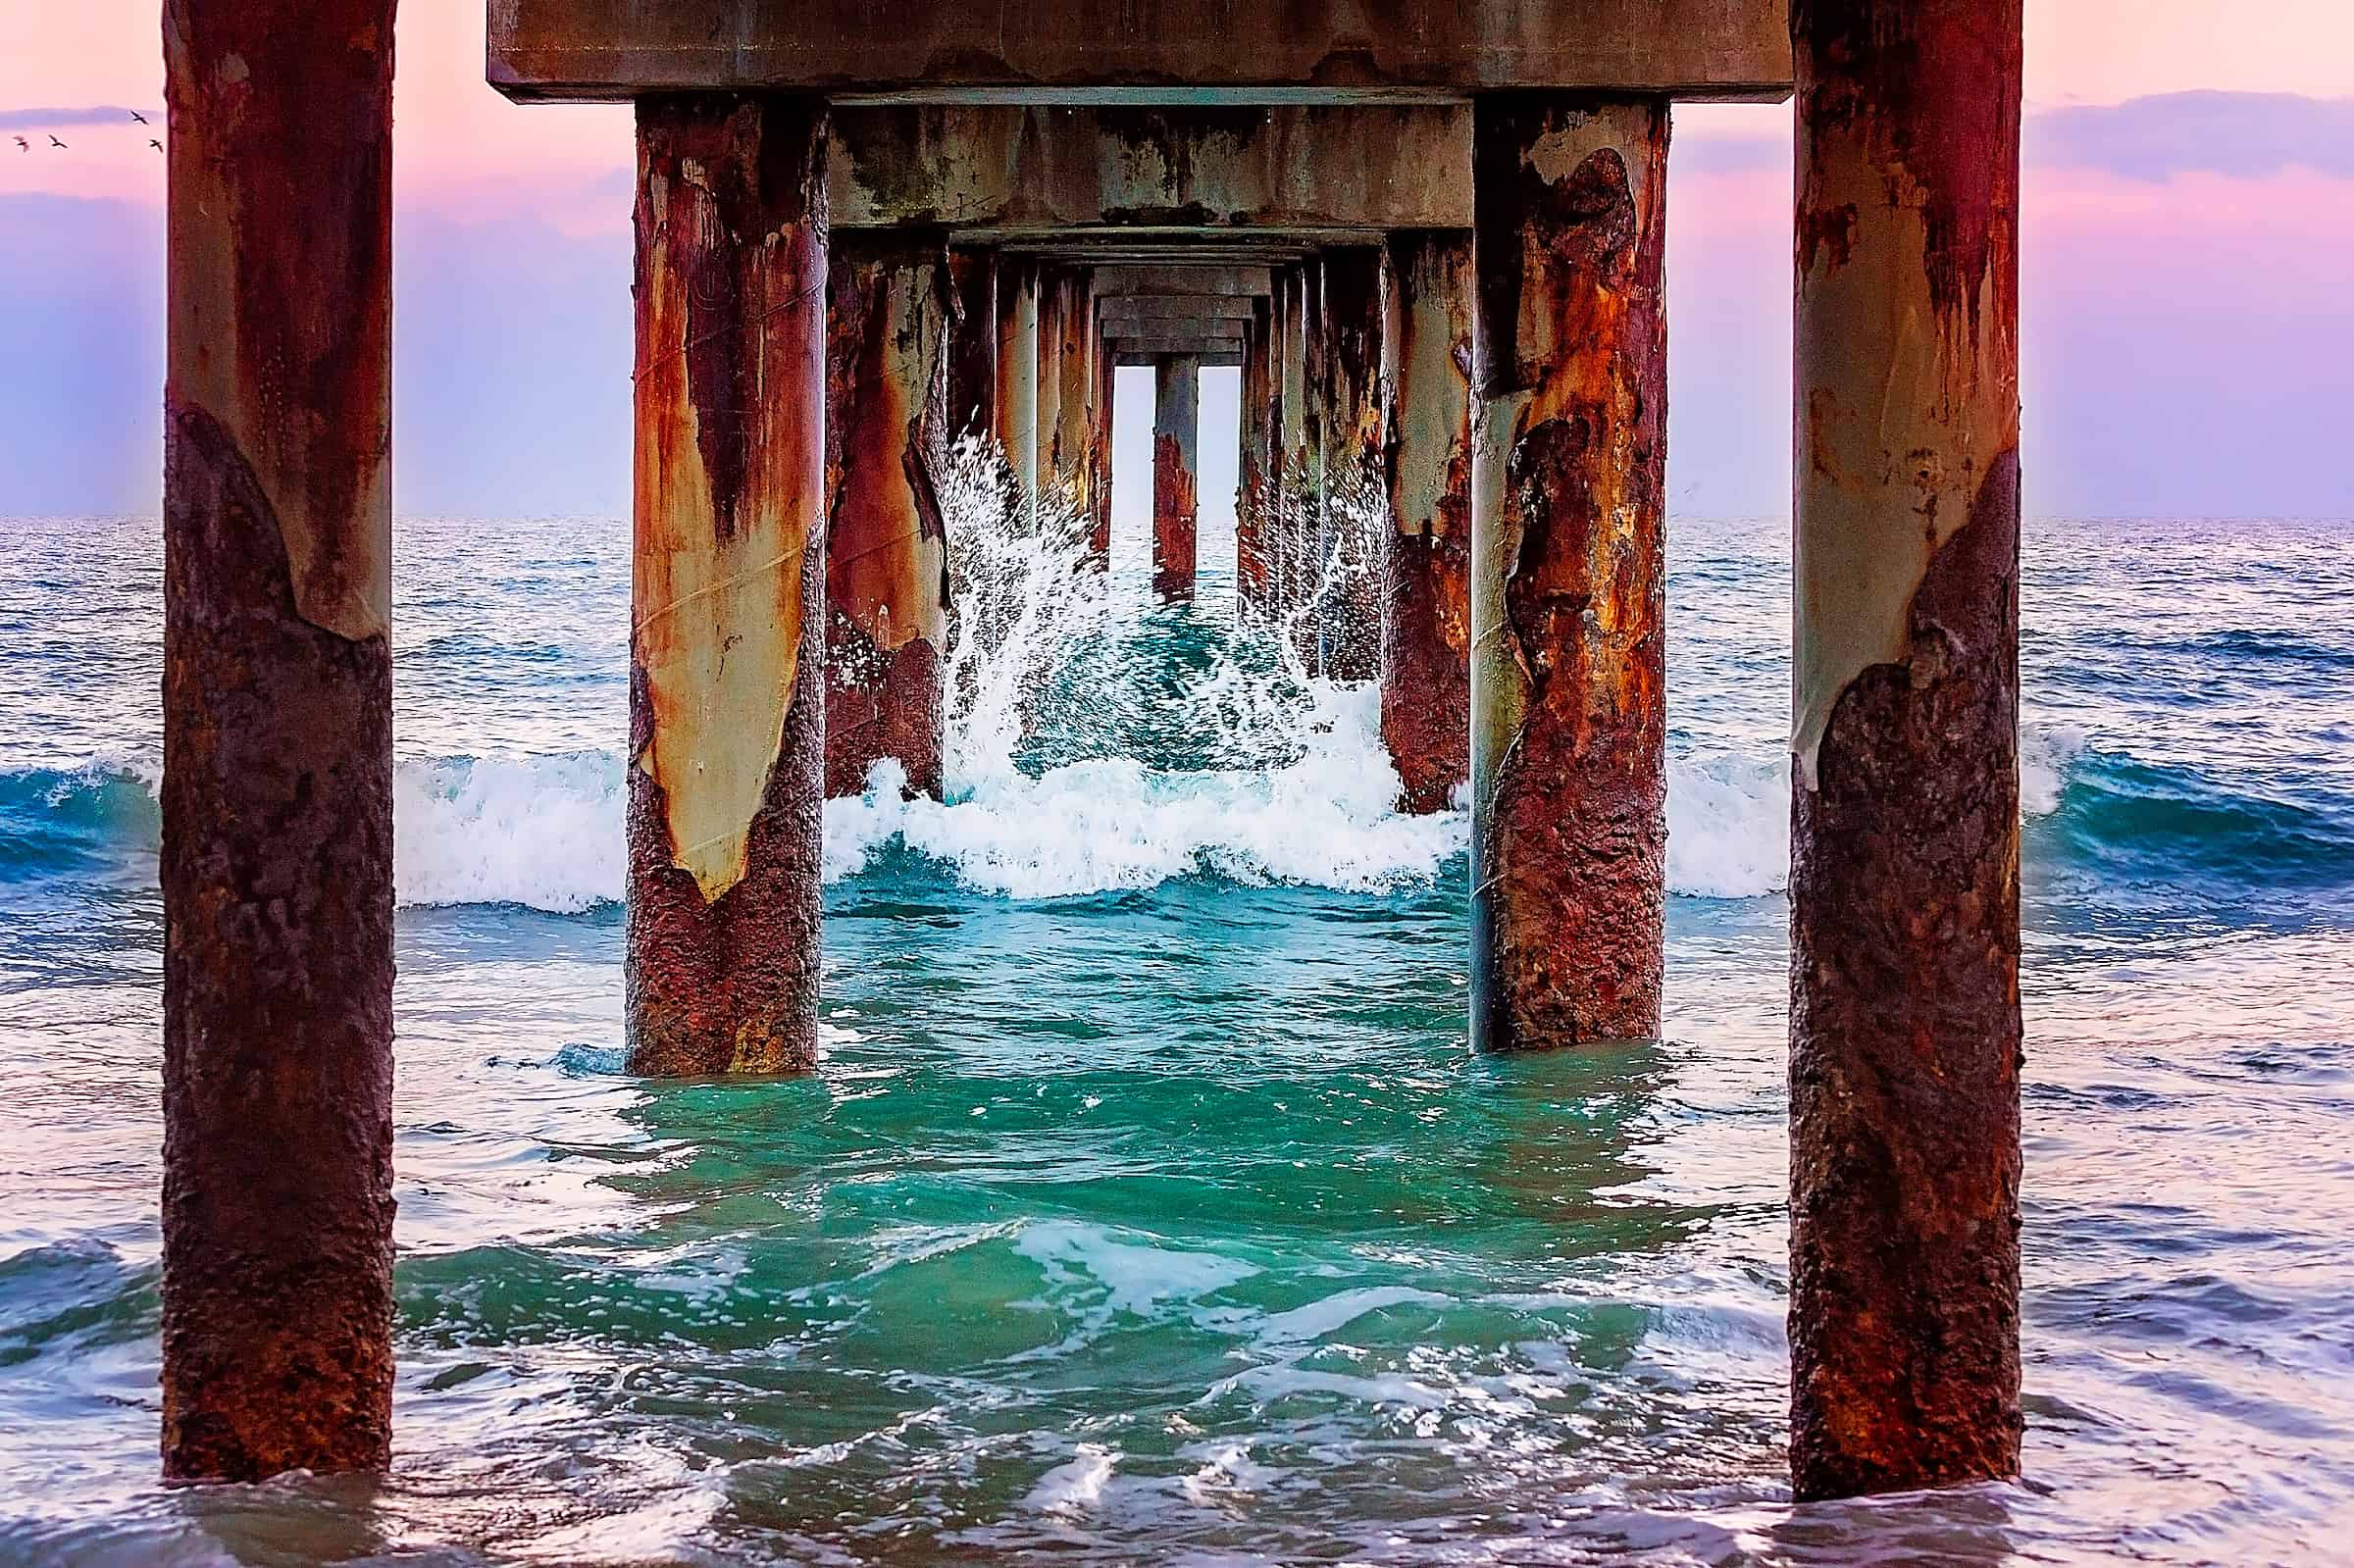 Waves crash beneath the St. Johns County Ocean Pier in St. Augustine, Florida